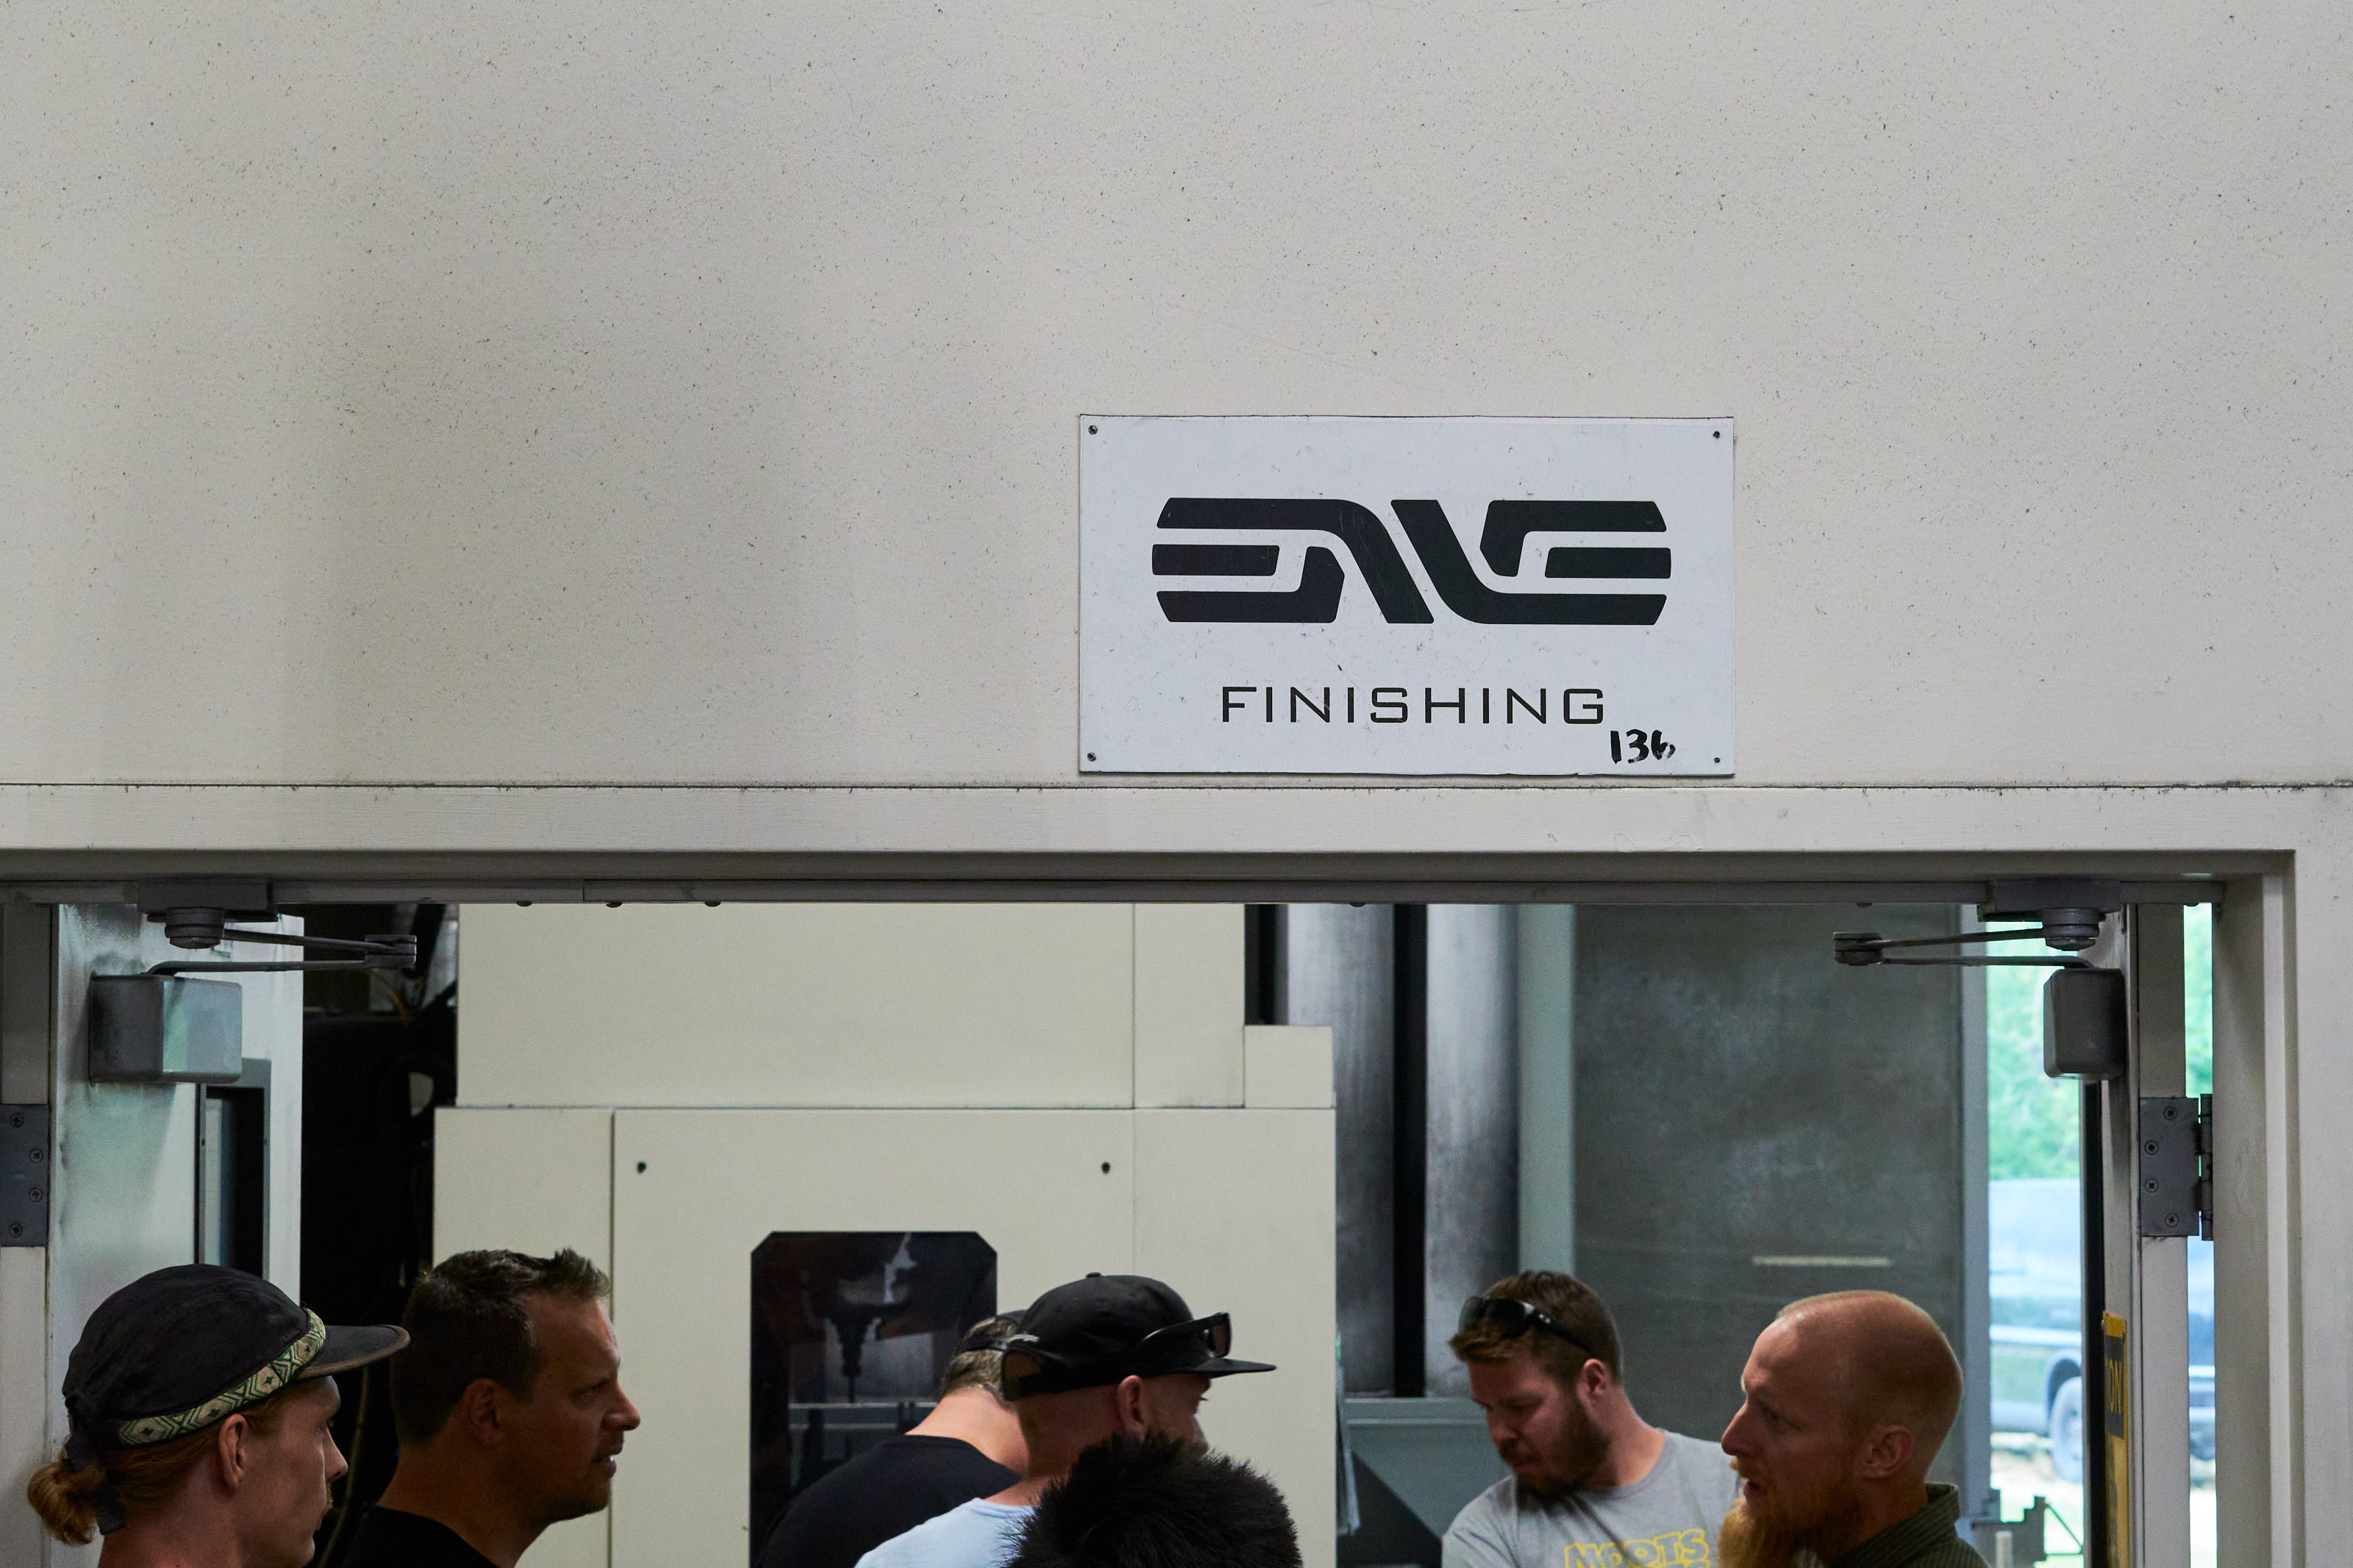 ENVE Factory tour with Contender Bicycles - finishing area